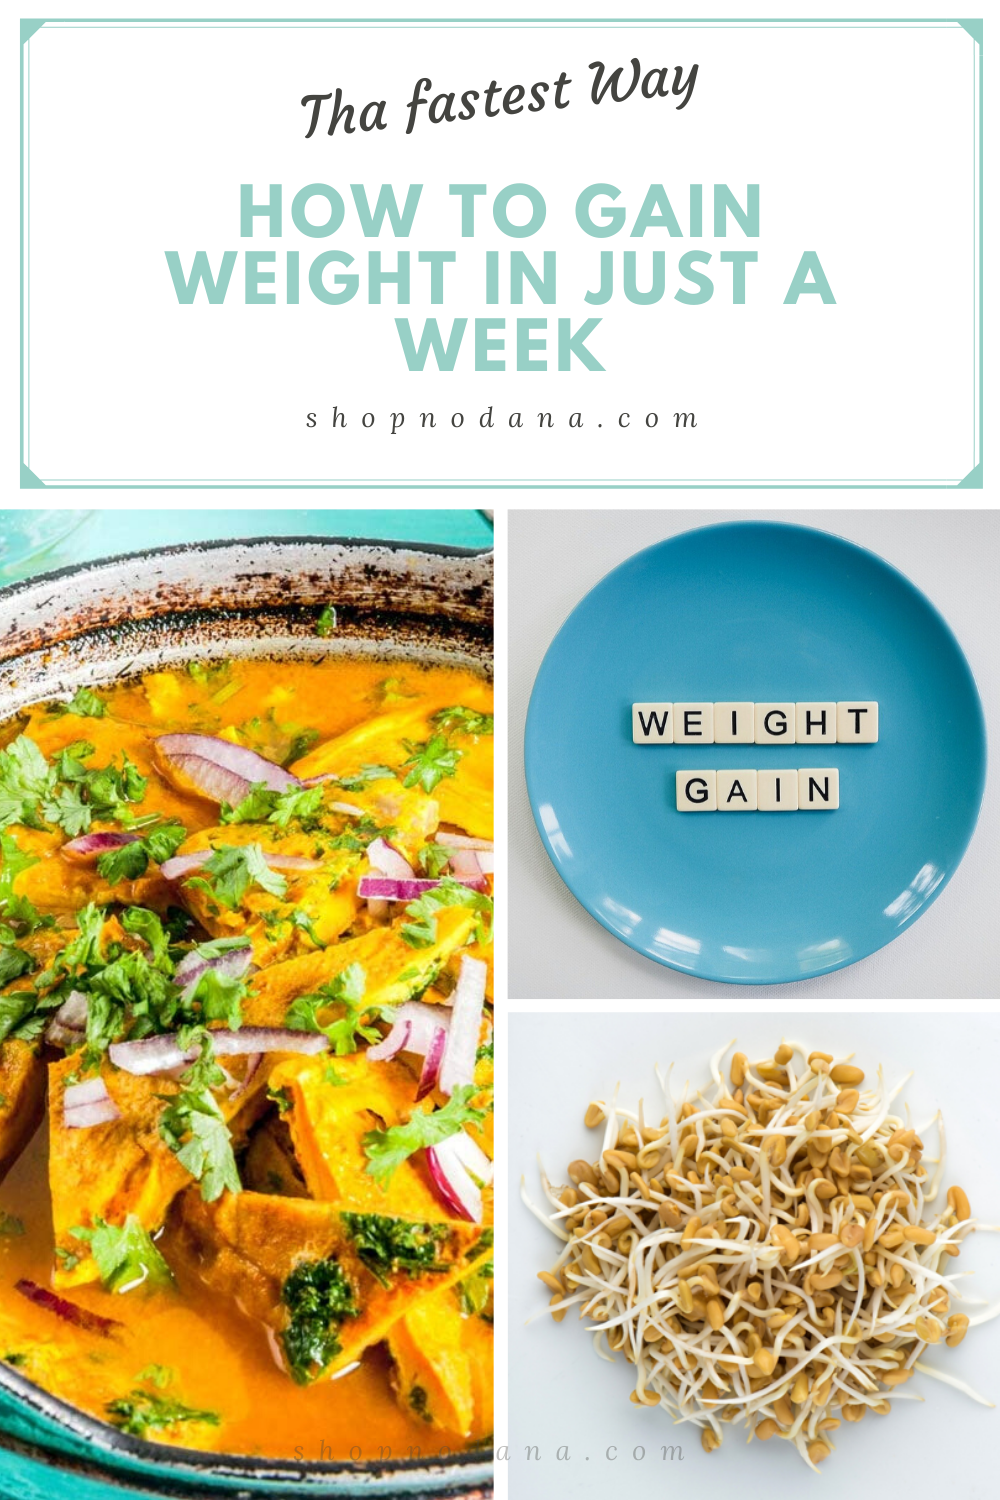 The fastest way to gain weight in just a week